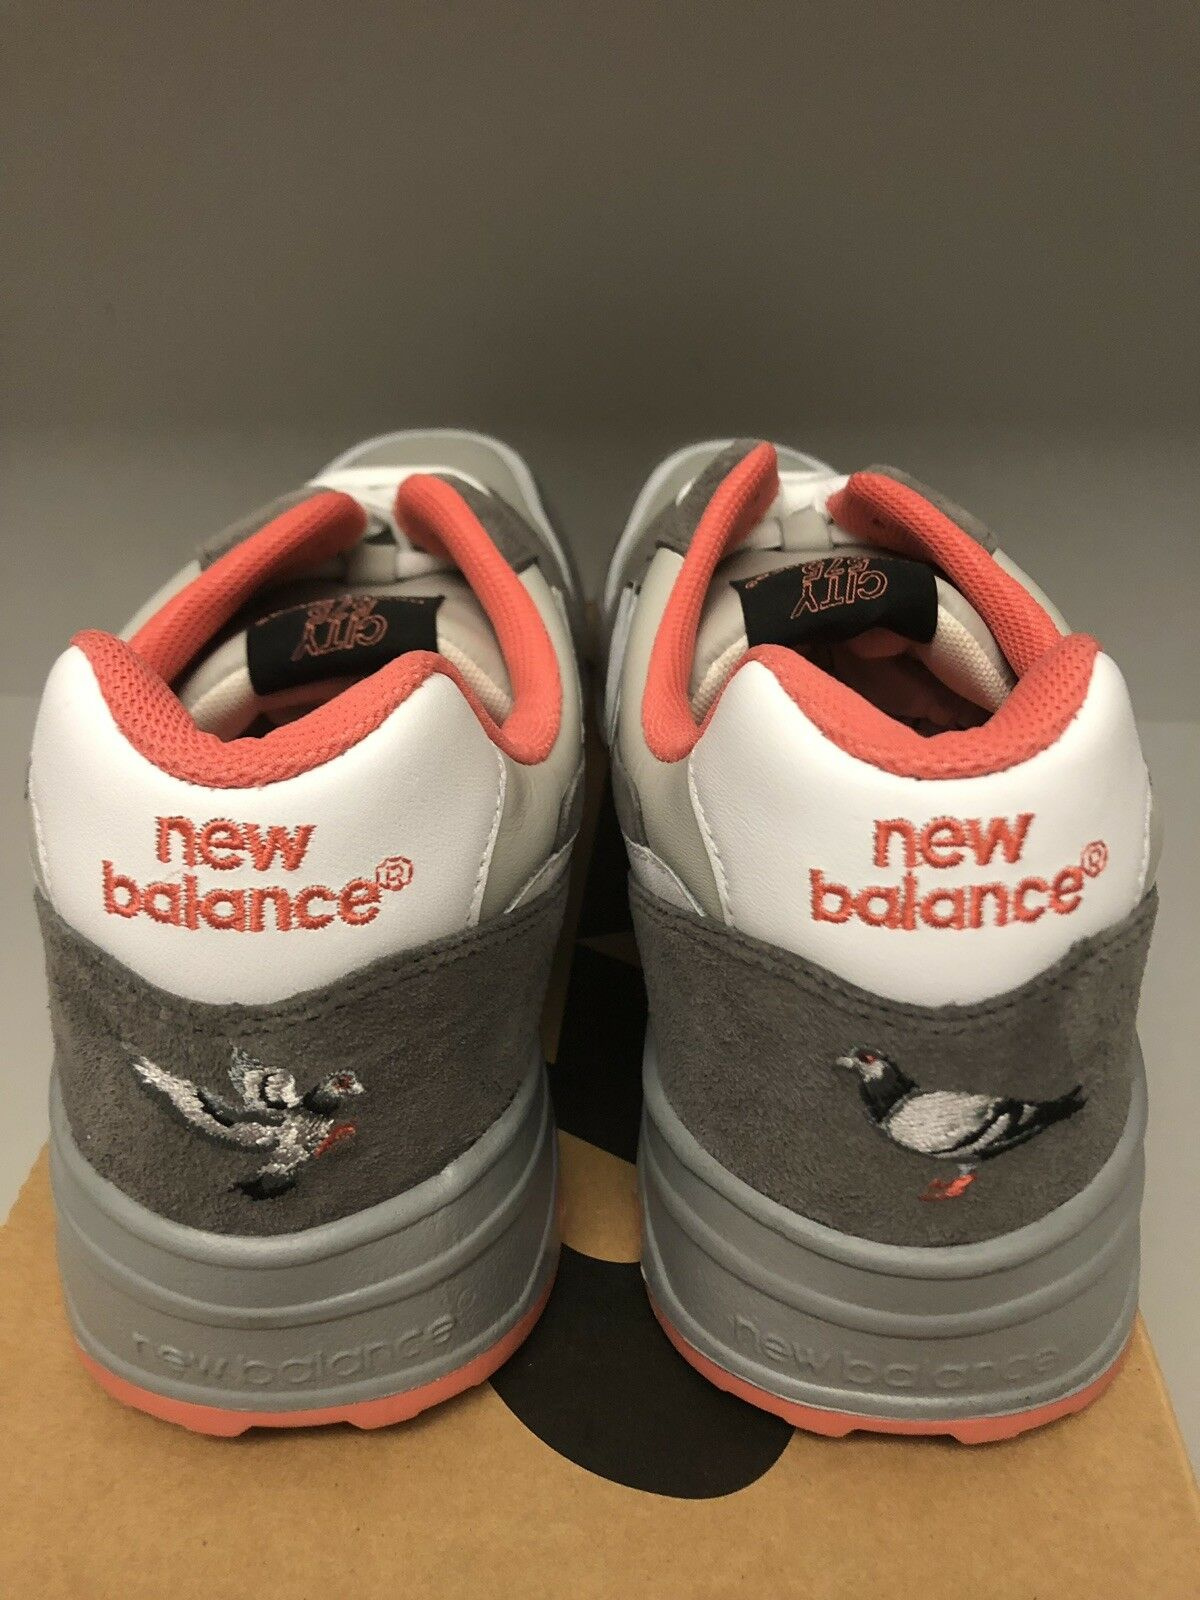 NEW BALANCE 575 X STAPLE PIGEON GREY DS 12 GREY PINK WHITE 2008 RELEASE